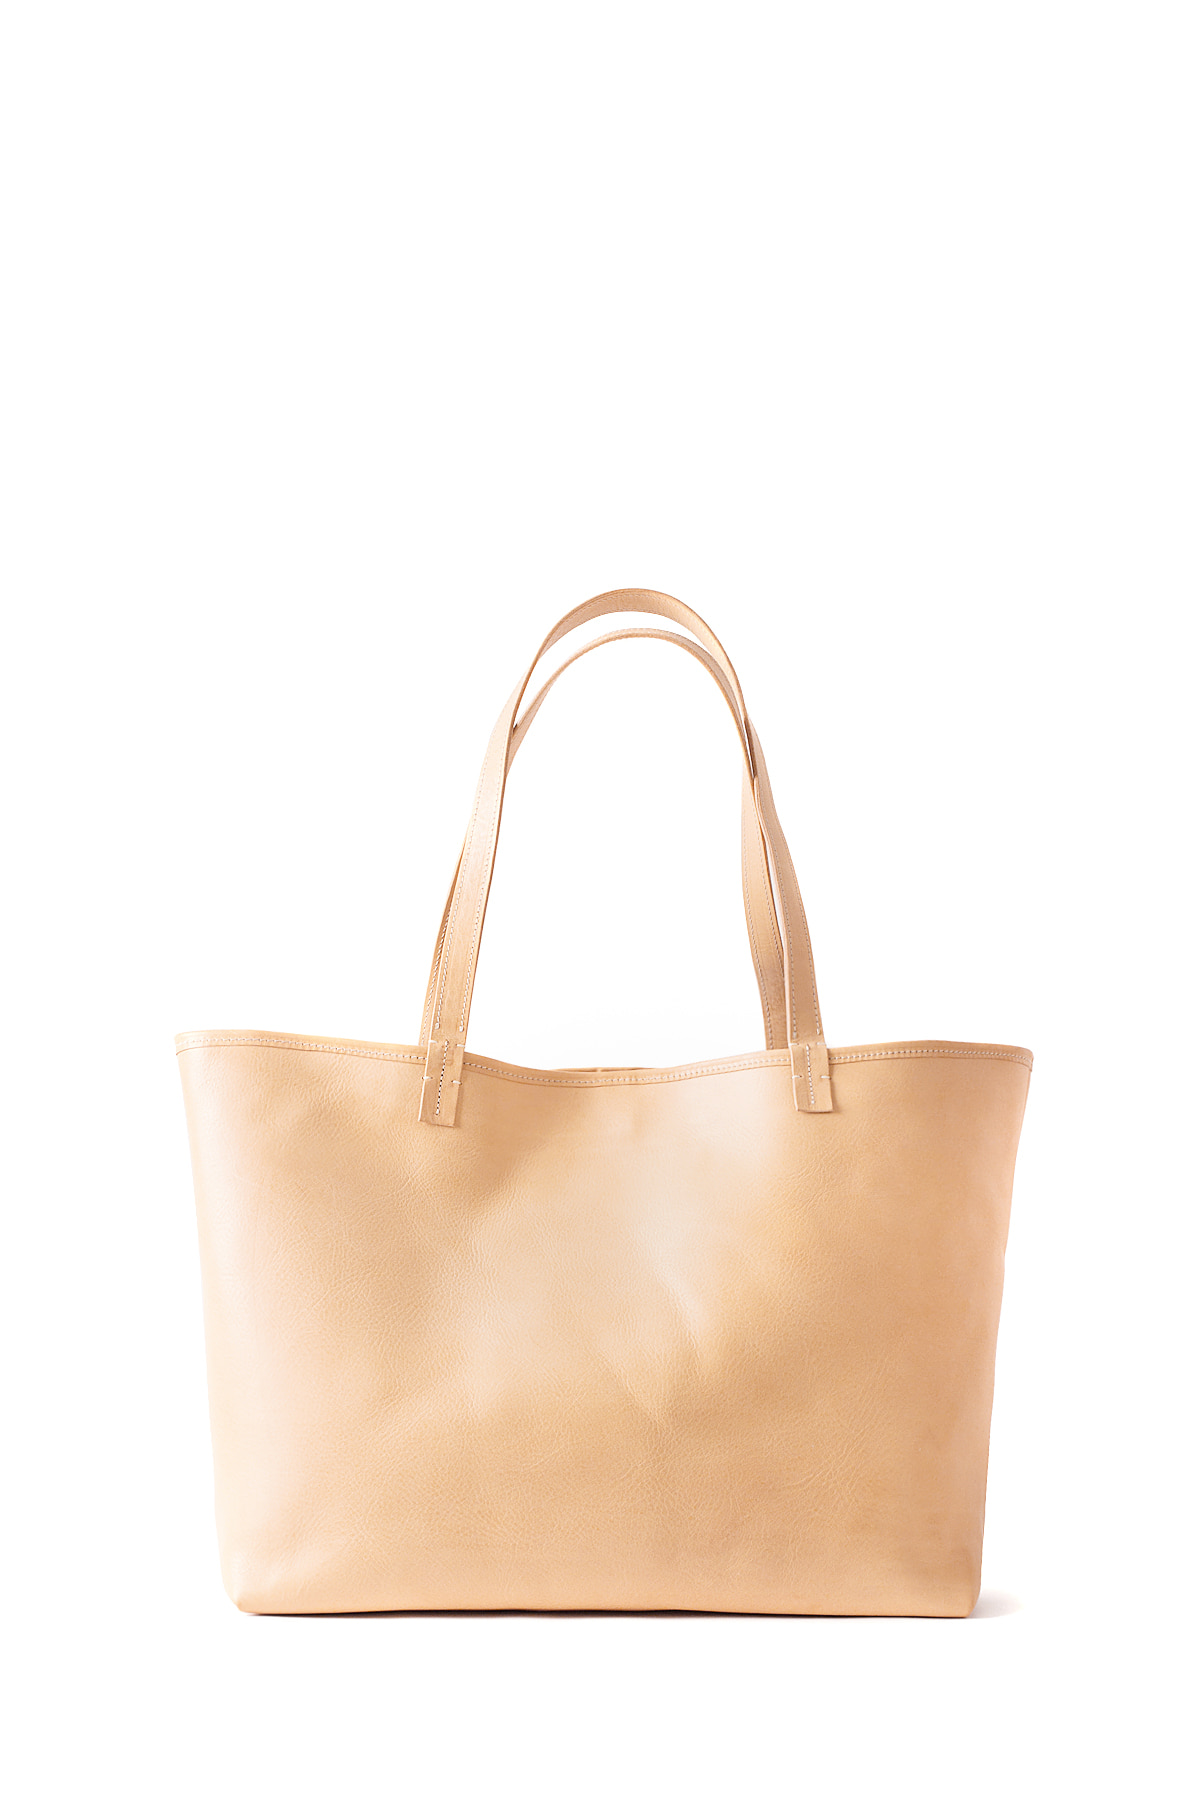 YSY : Shopper Bag L (Natural)